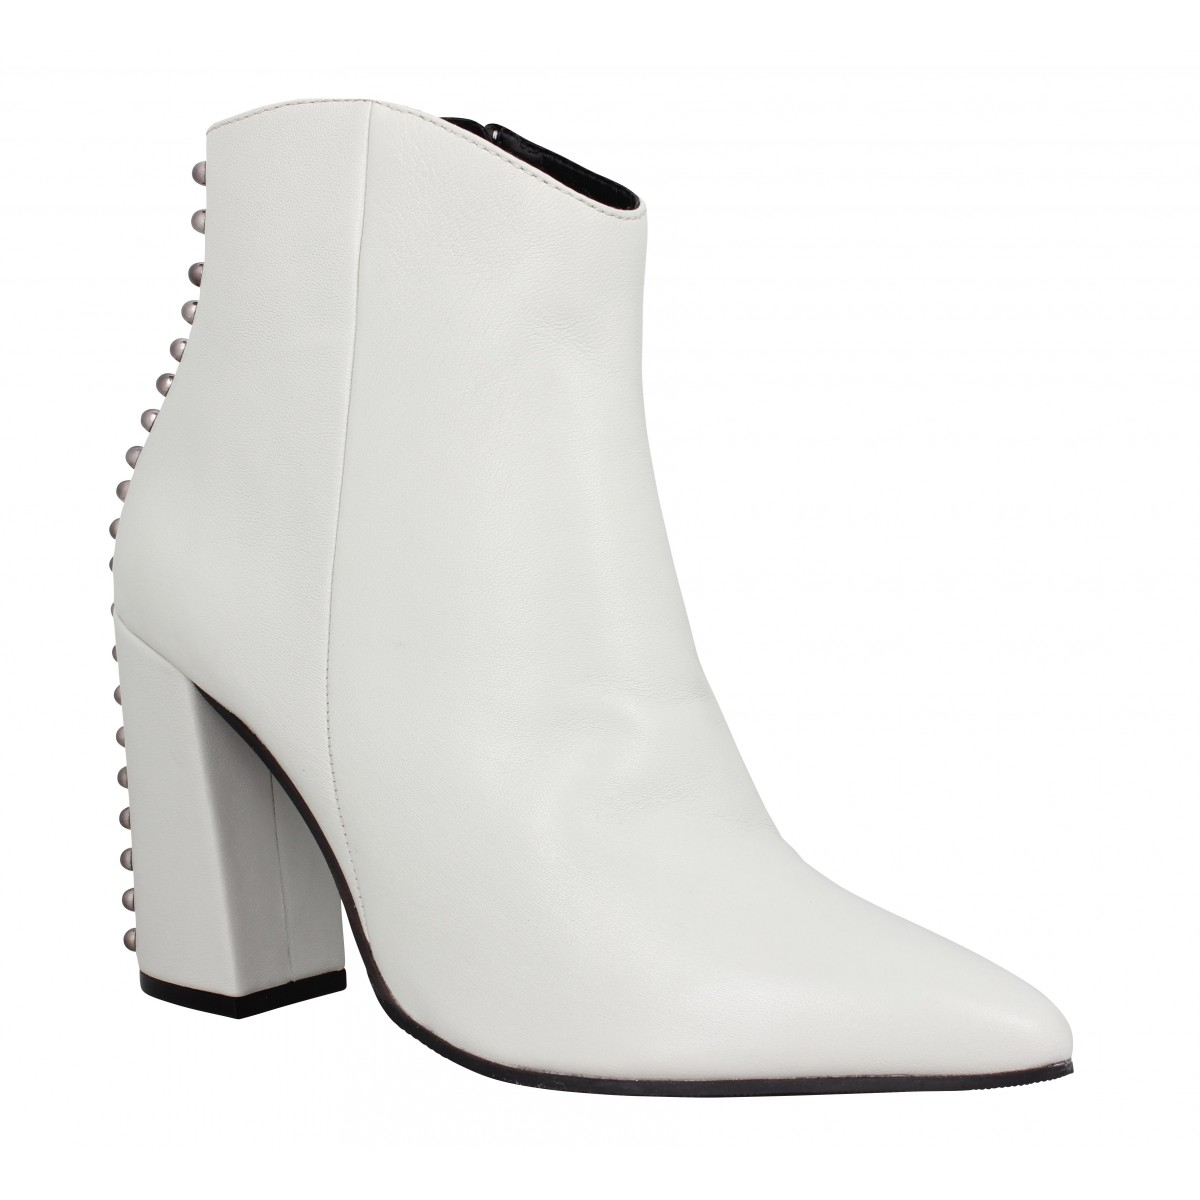 Bottines ADELE DEZOTTI 1801 cuir Femme Glace